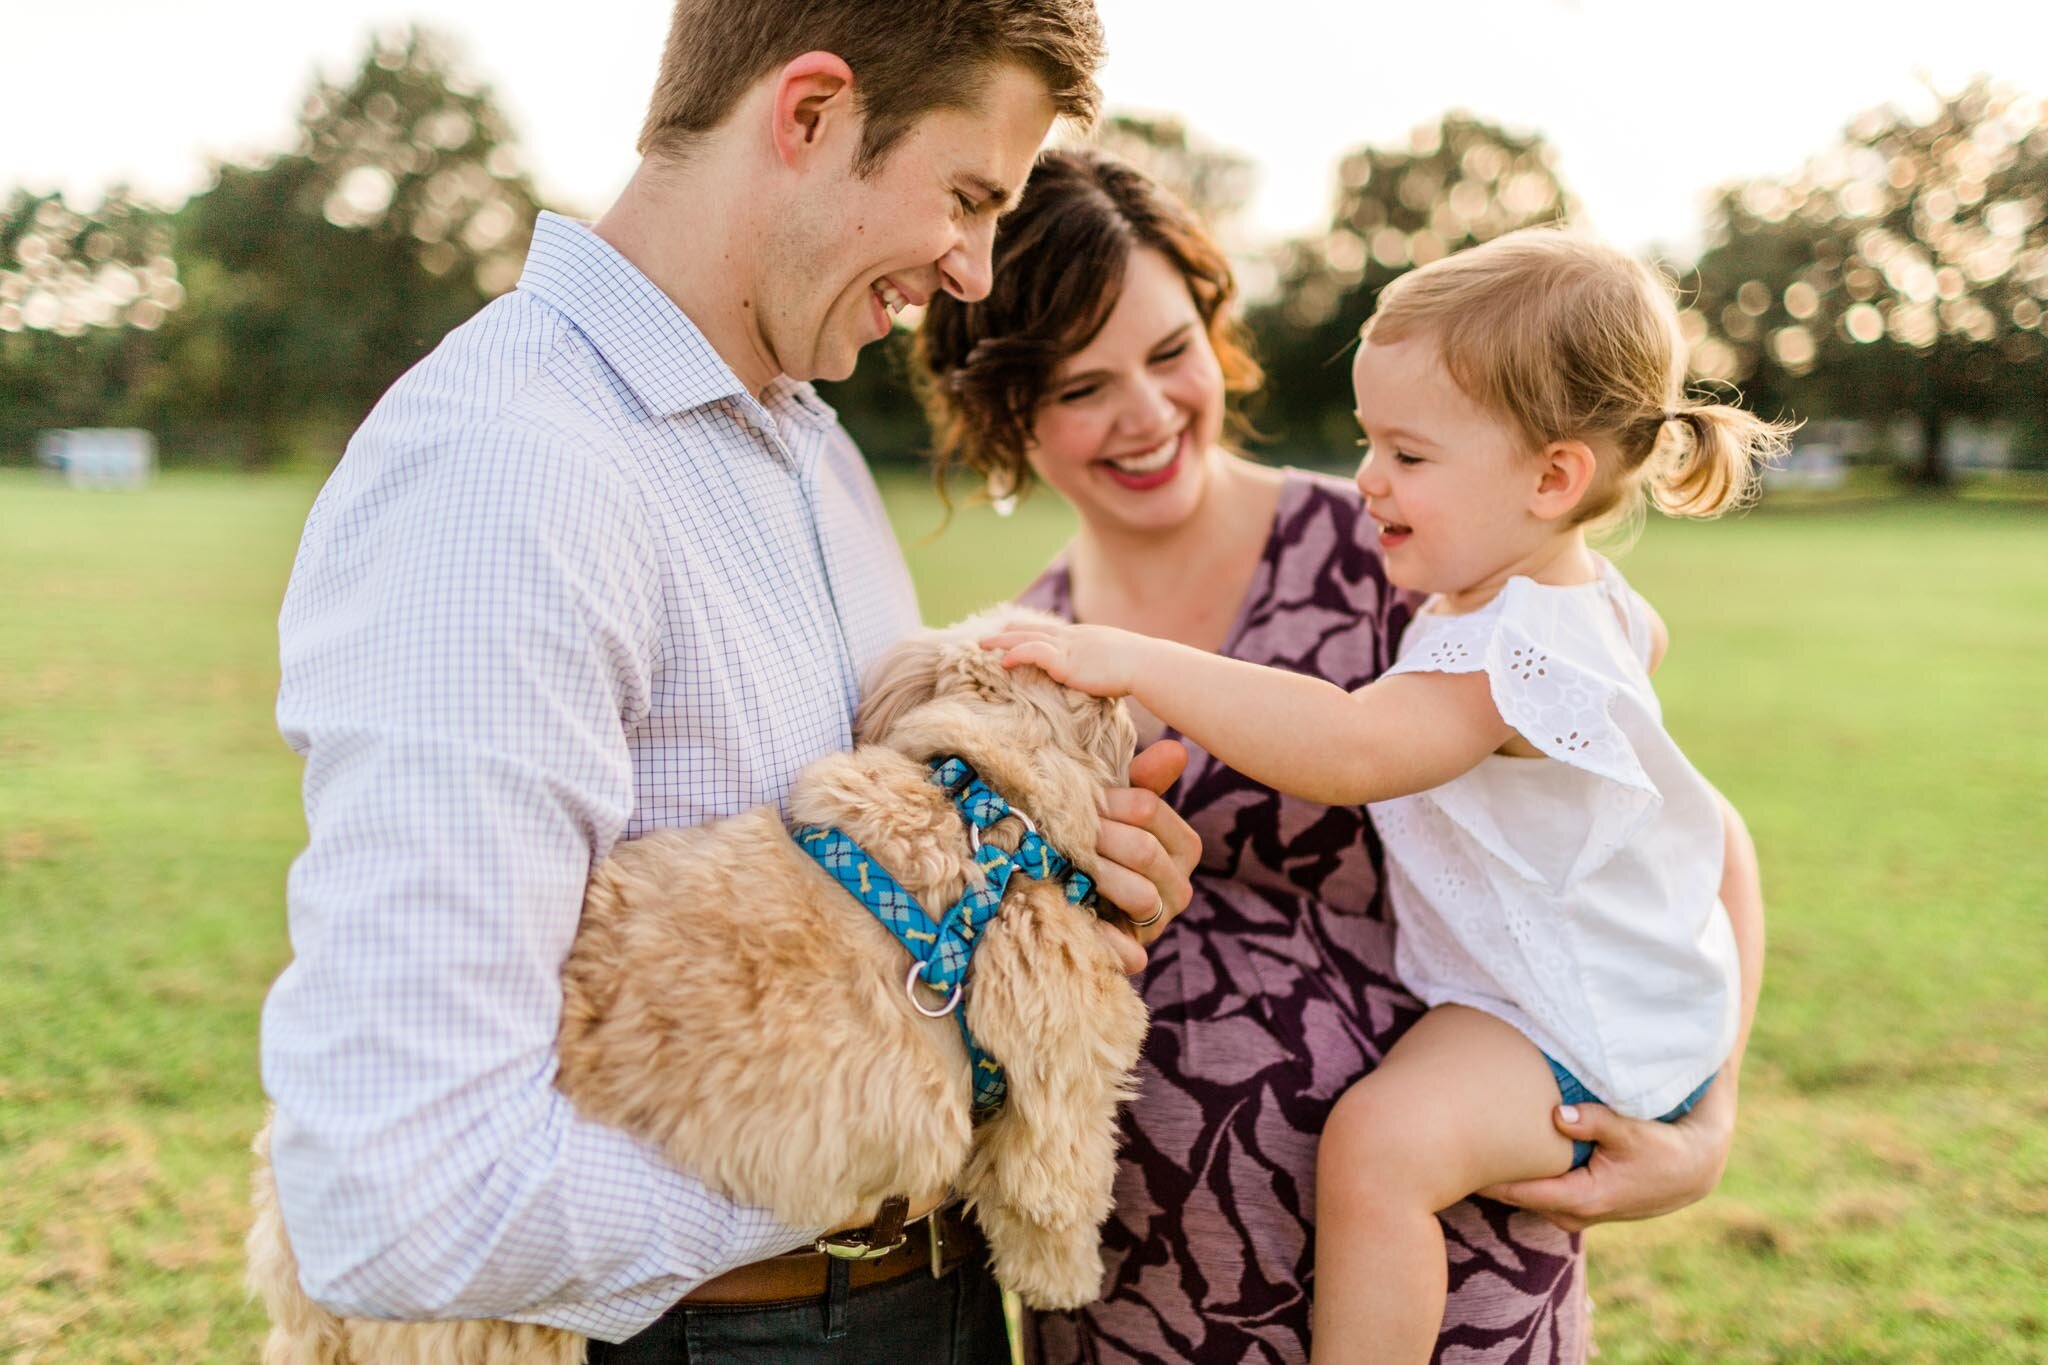 Maternity Photos at Dix Park | Raleigh Family Photographer | By G. Lin Photography